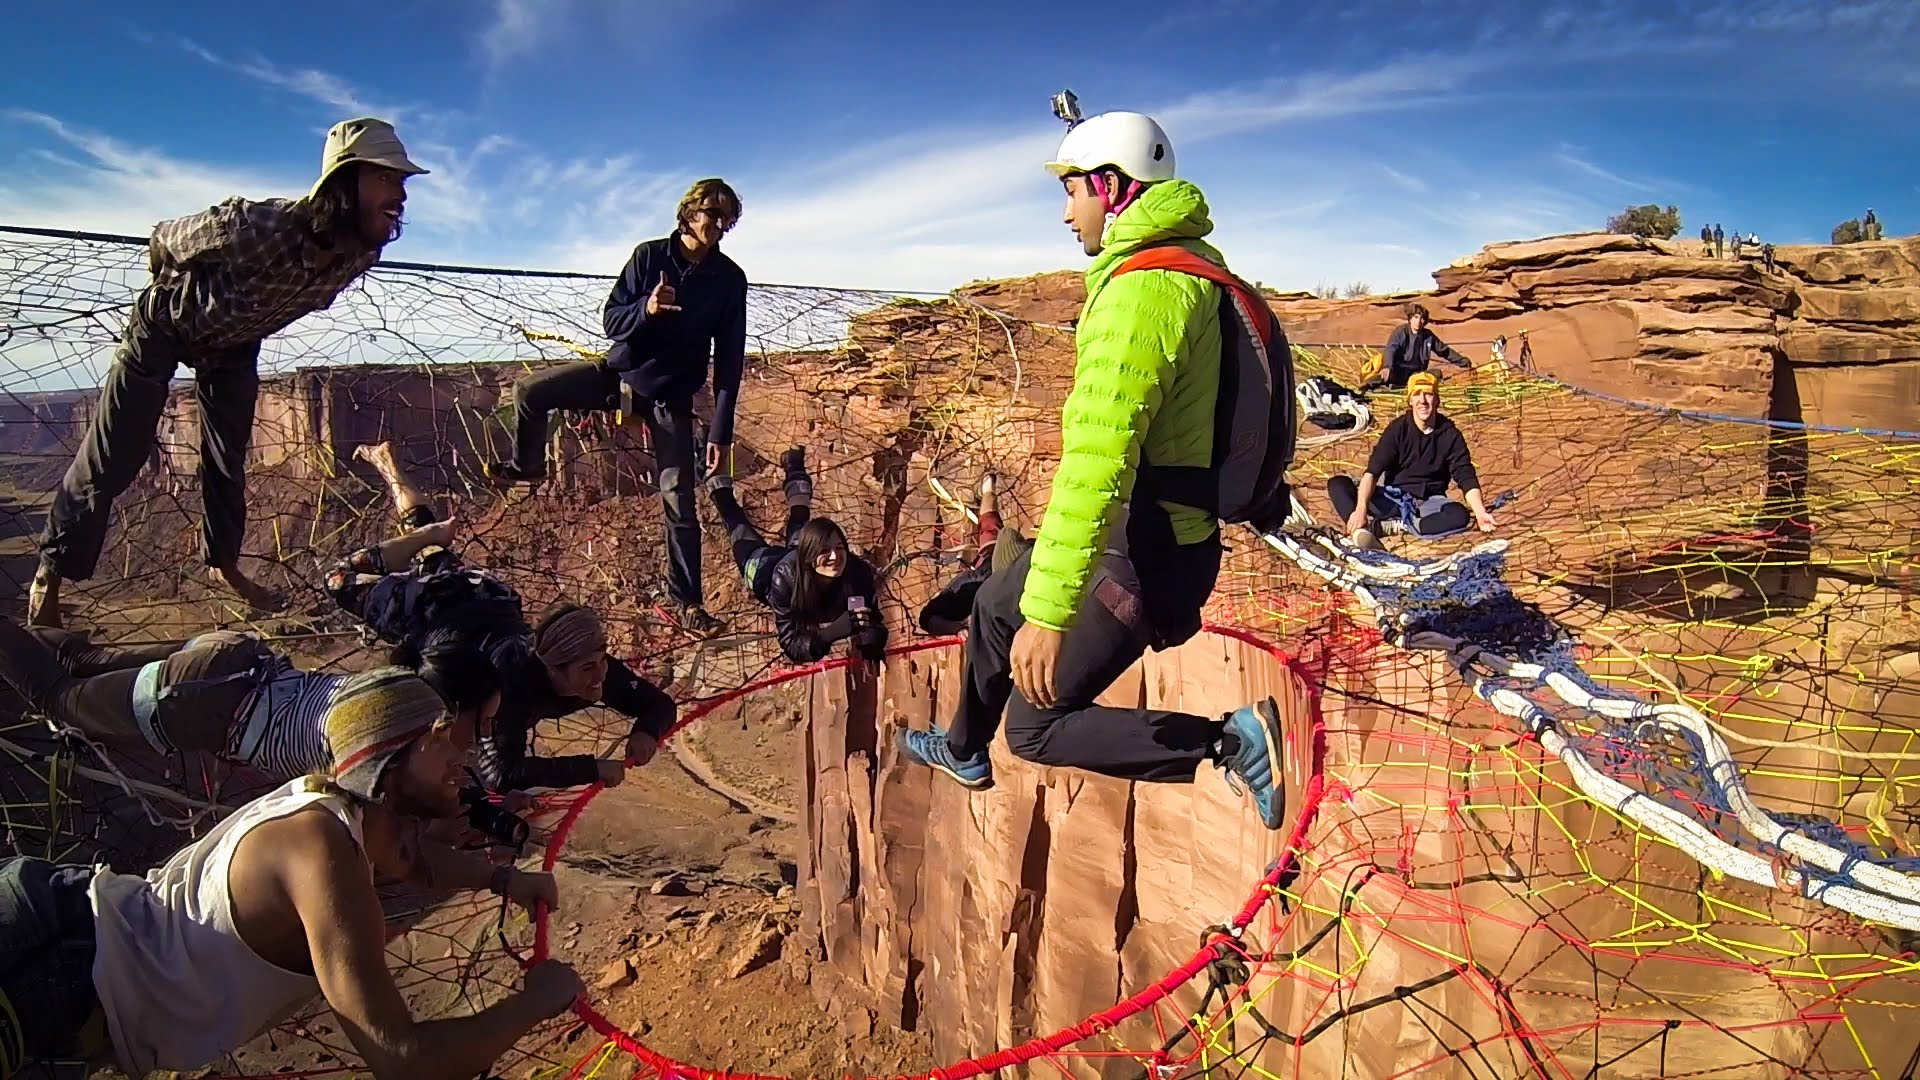 Gopro Video Of A Daredevil Base Jumping From A Hole Inside A